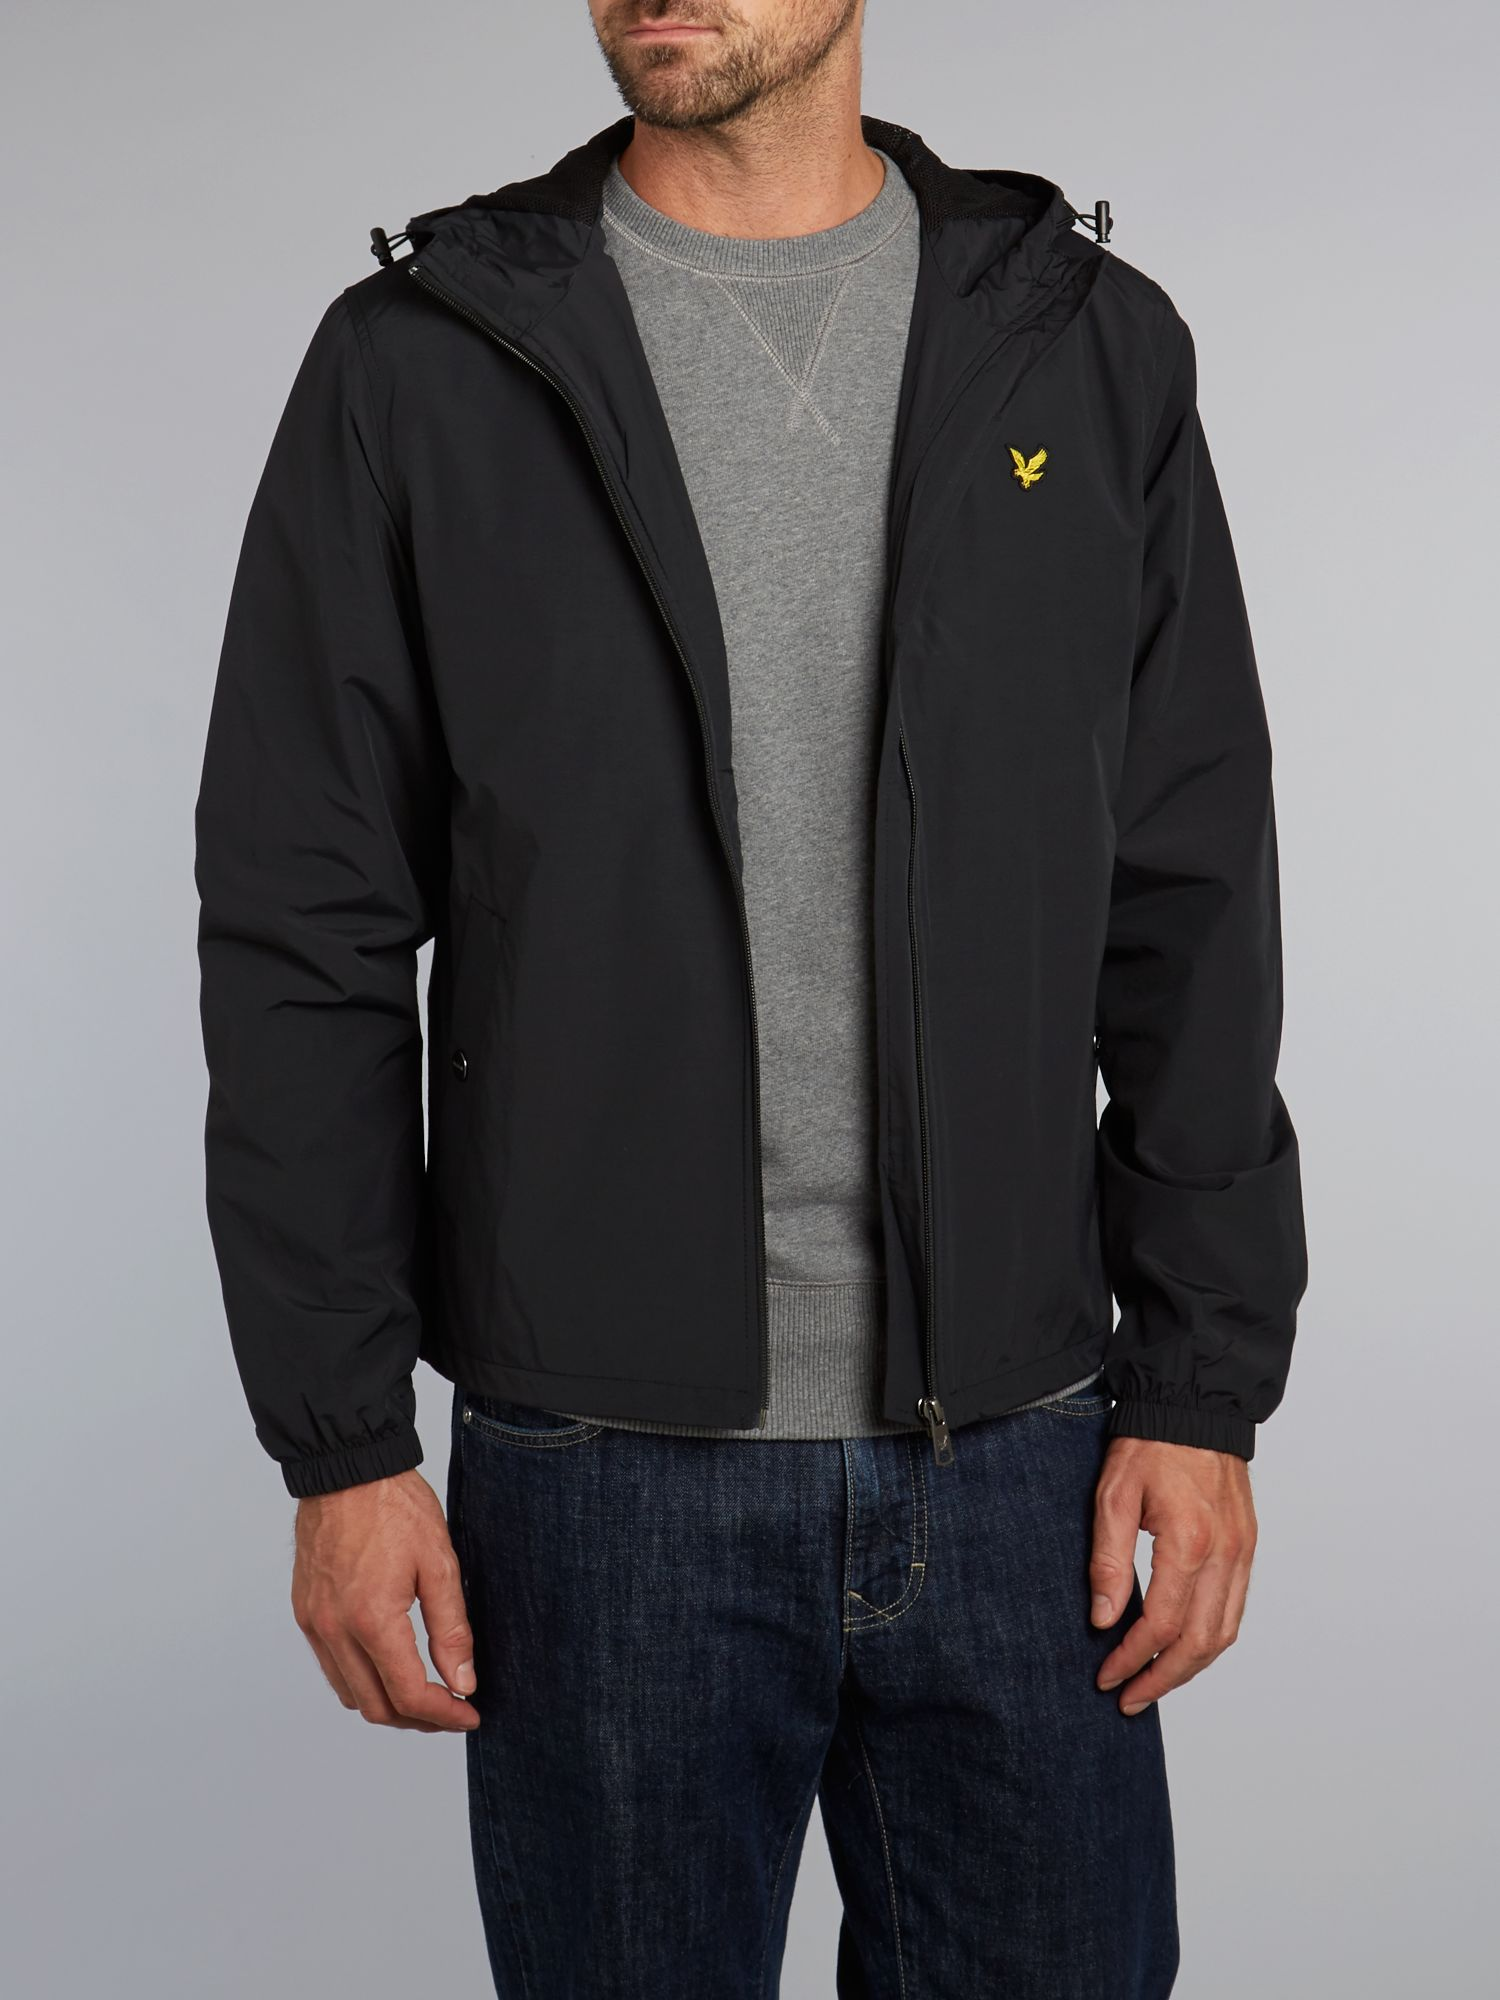 lyle scott zip through hooded jacket in black for men lyst. Black Bedroom Furniture Sets. Home Design Ideas